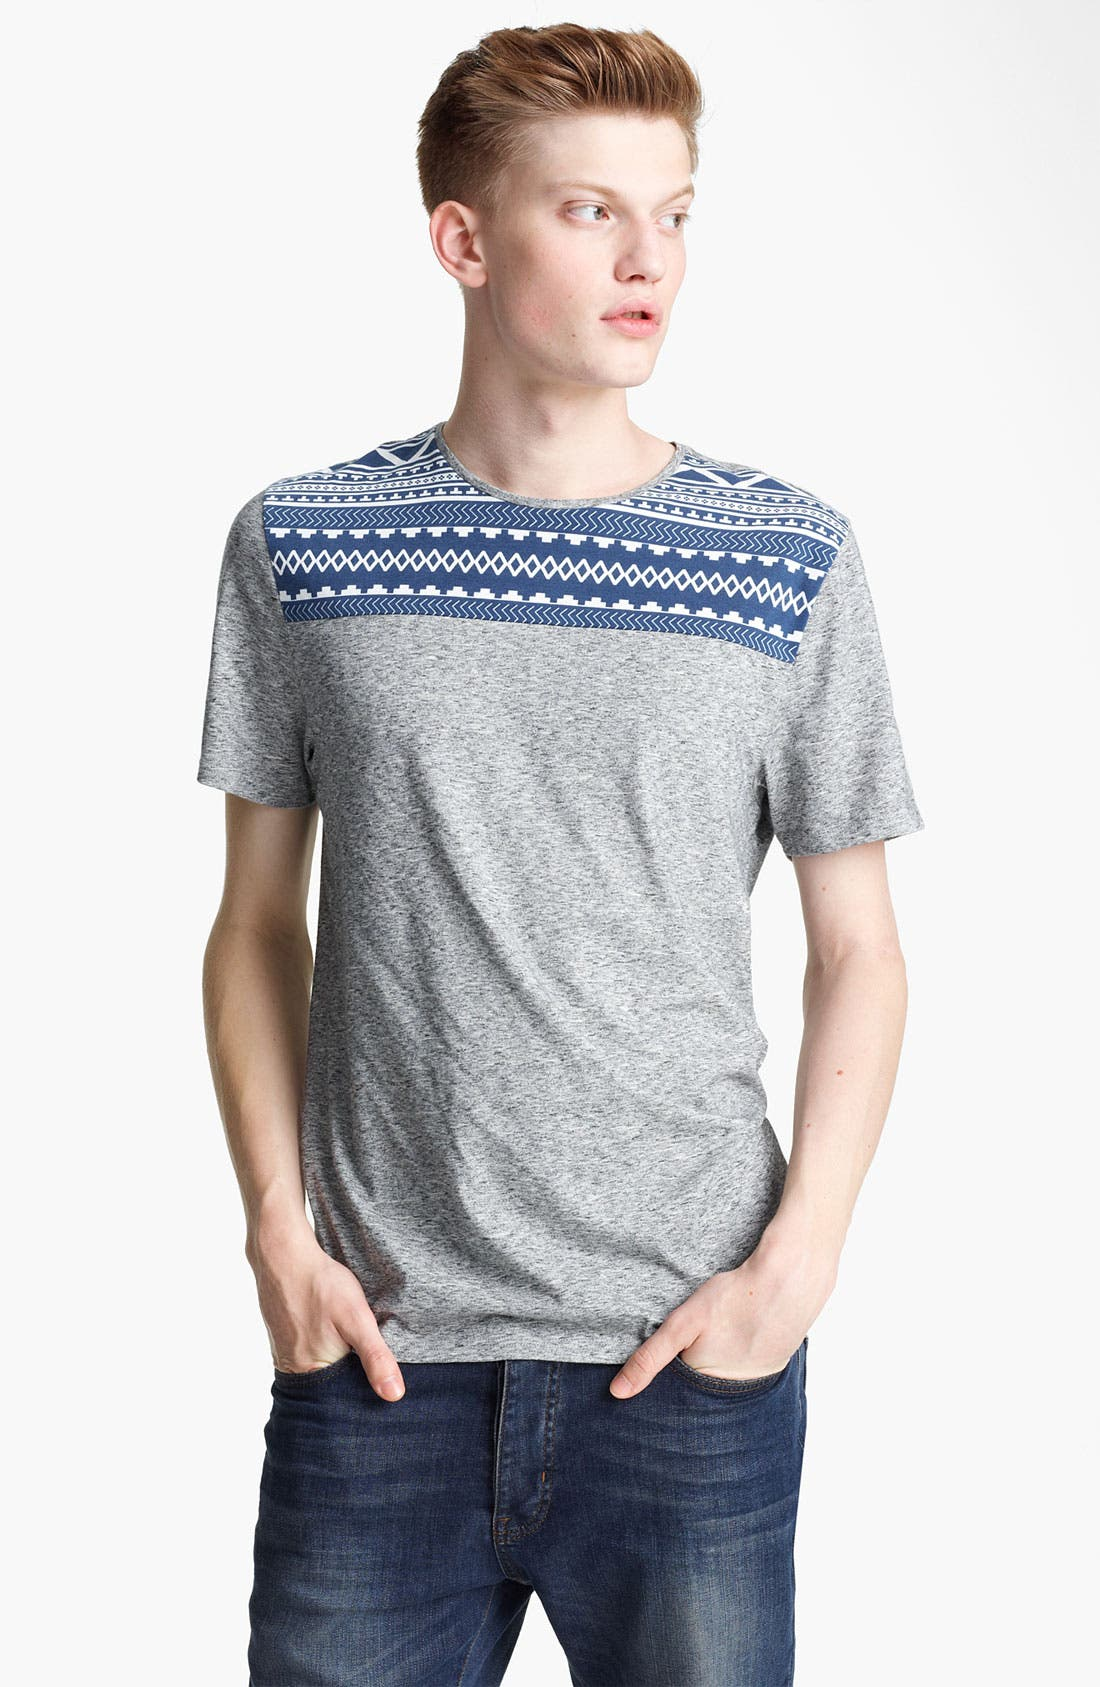 Alternate Image 1 Selected - Topman 'Aztec Yoke' T-Shirt